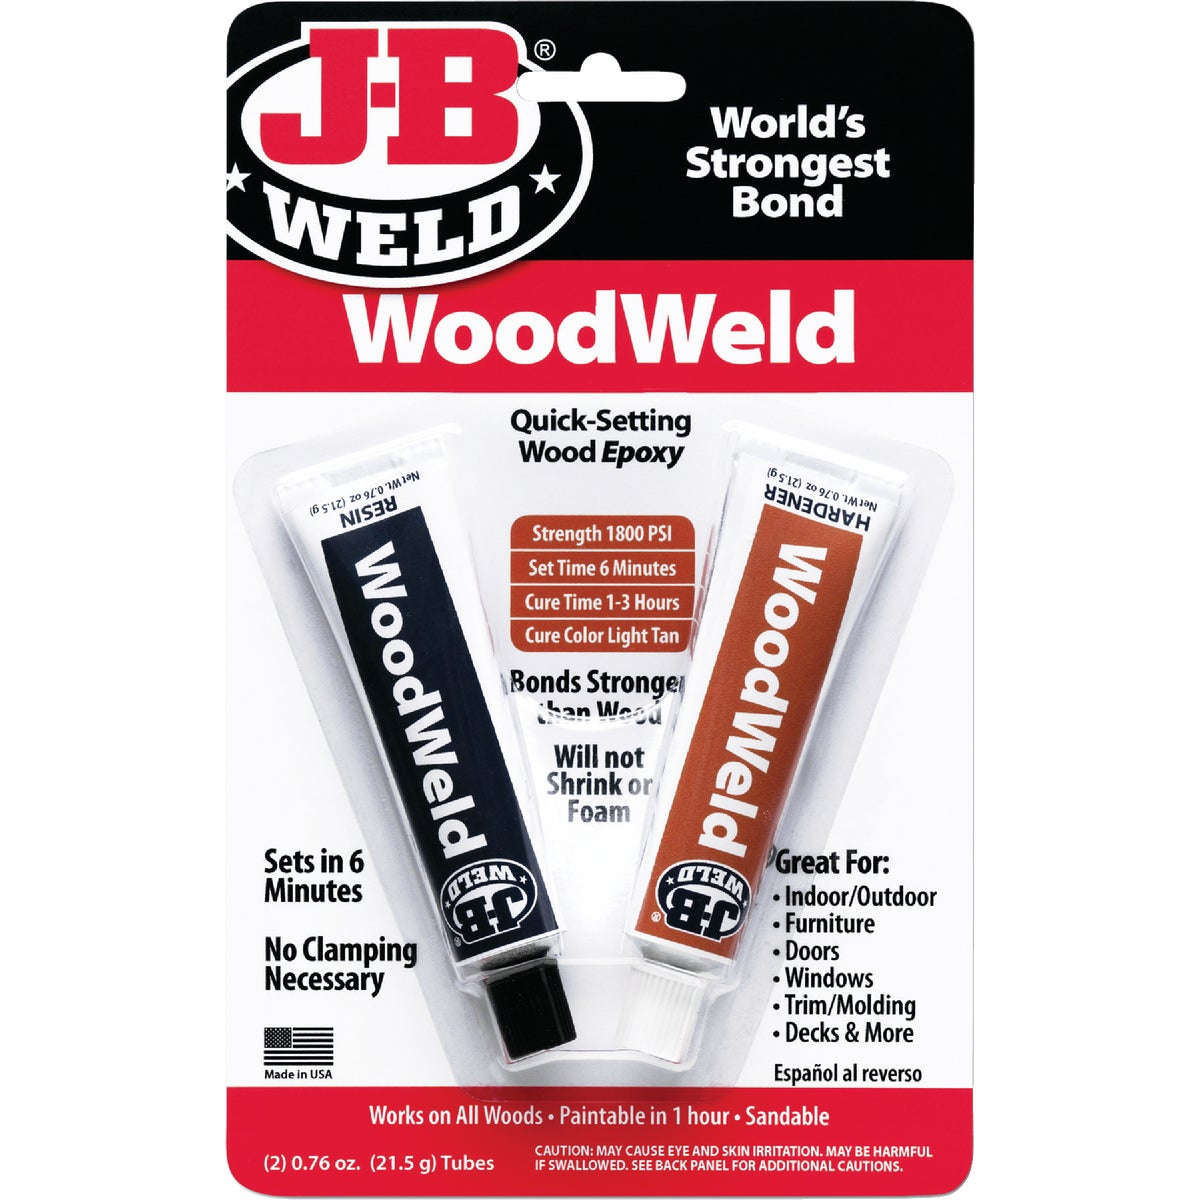 2OZ WOODWELD EPOXY - 8251 by J B Weld Co